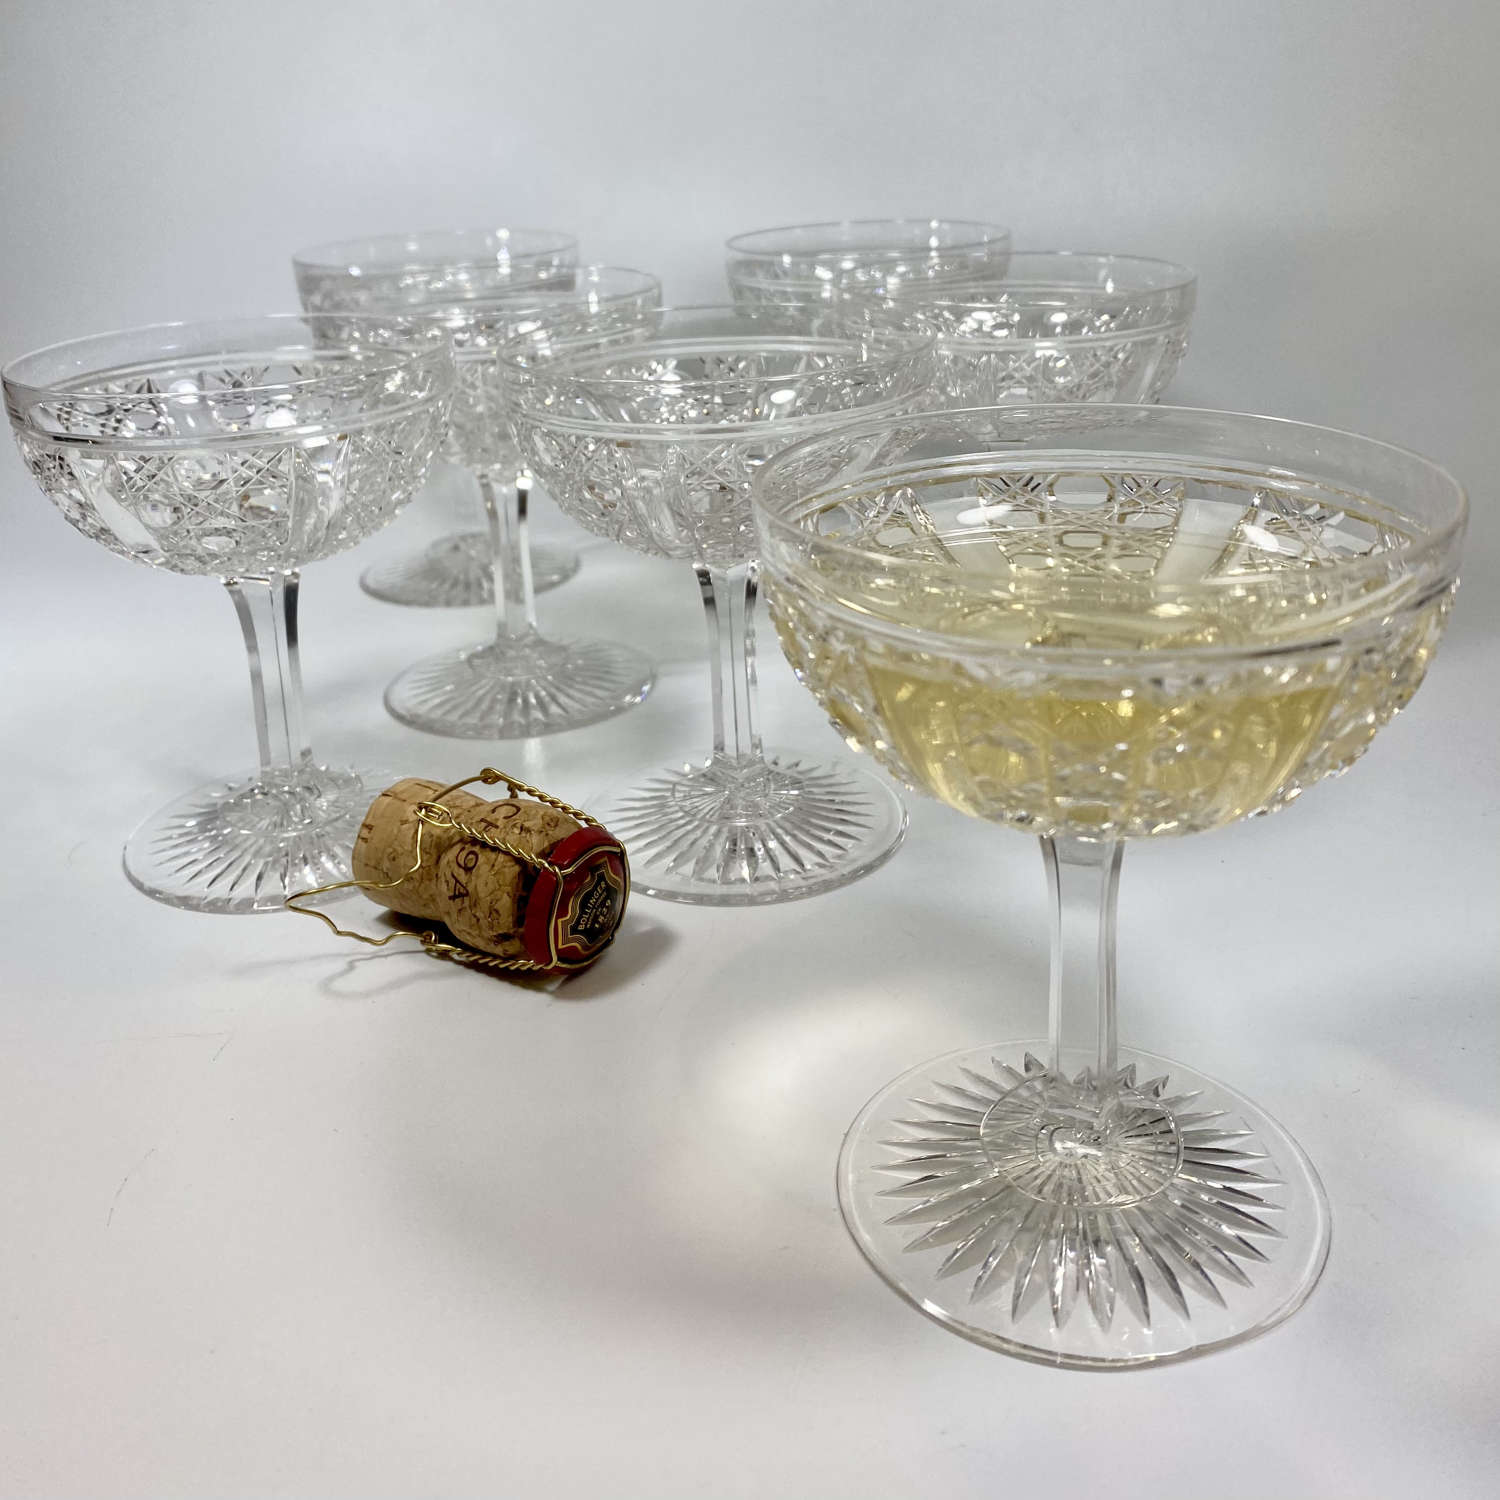 Exquisite Victorian finest crystal champagne or cocktail coupes